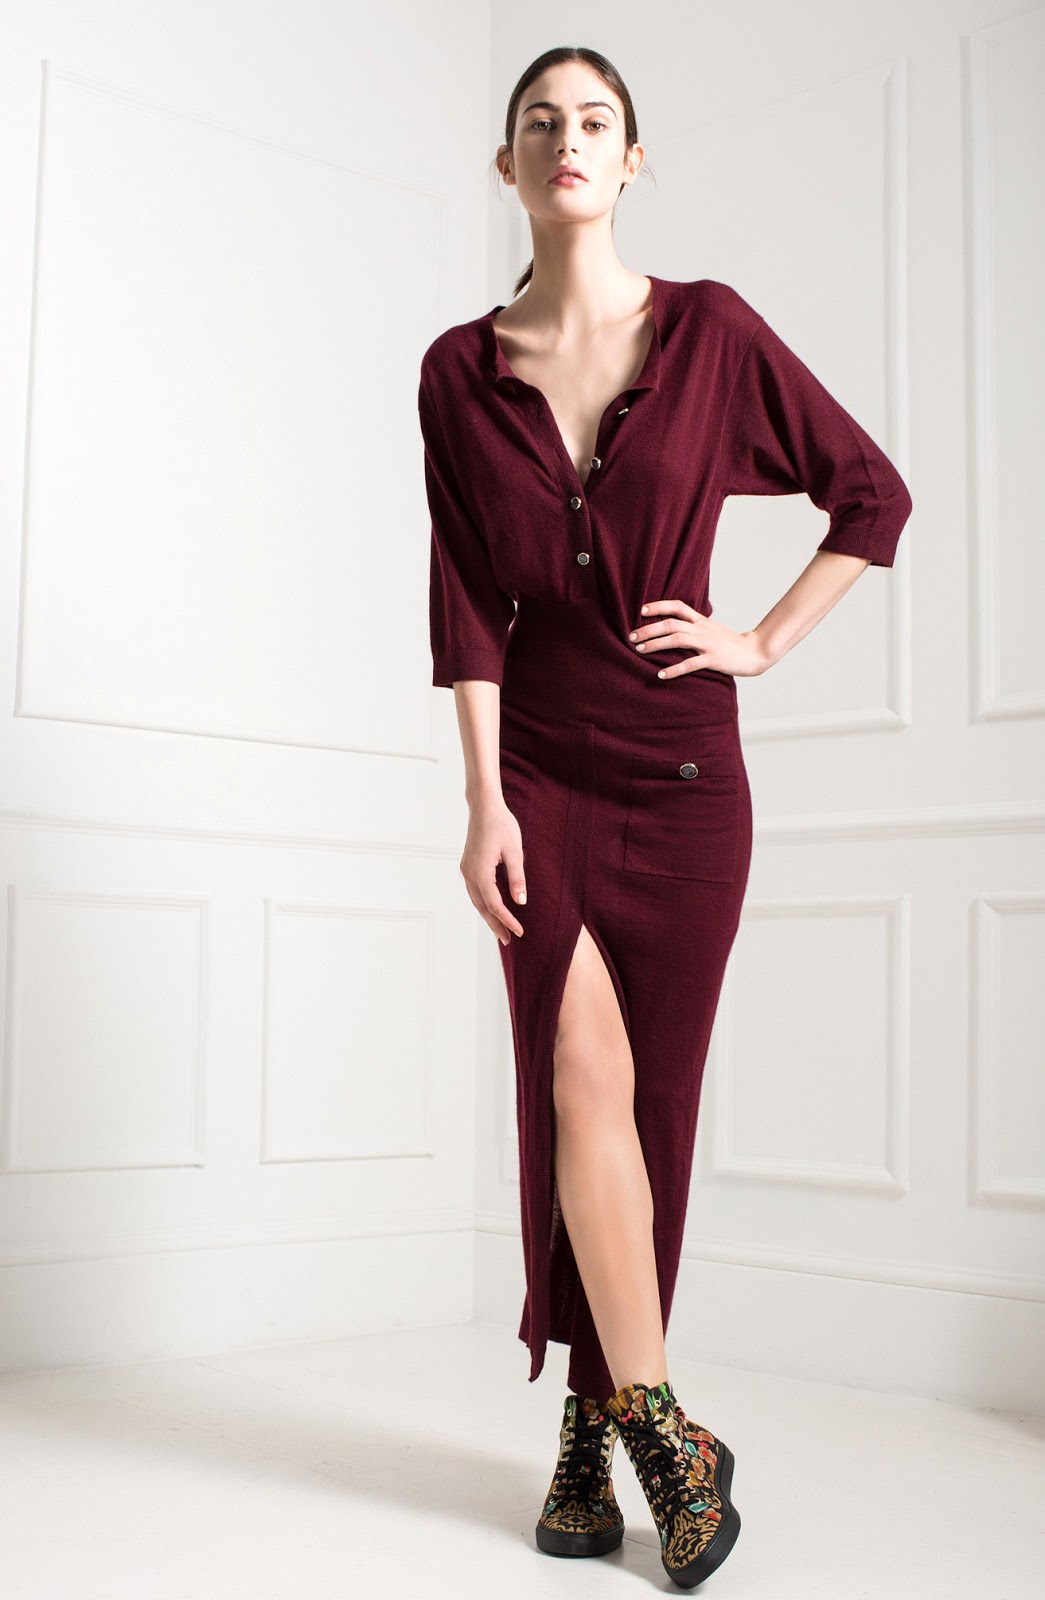 Autumn wish list / Temperley London Pre Fall 2015 burgundy dress via fashionedbylove.co.uk british fashion blog